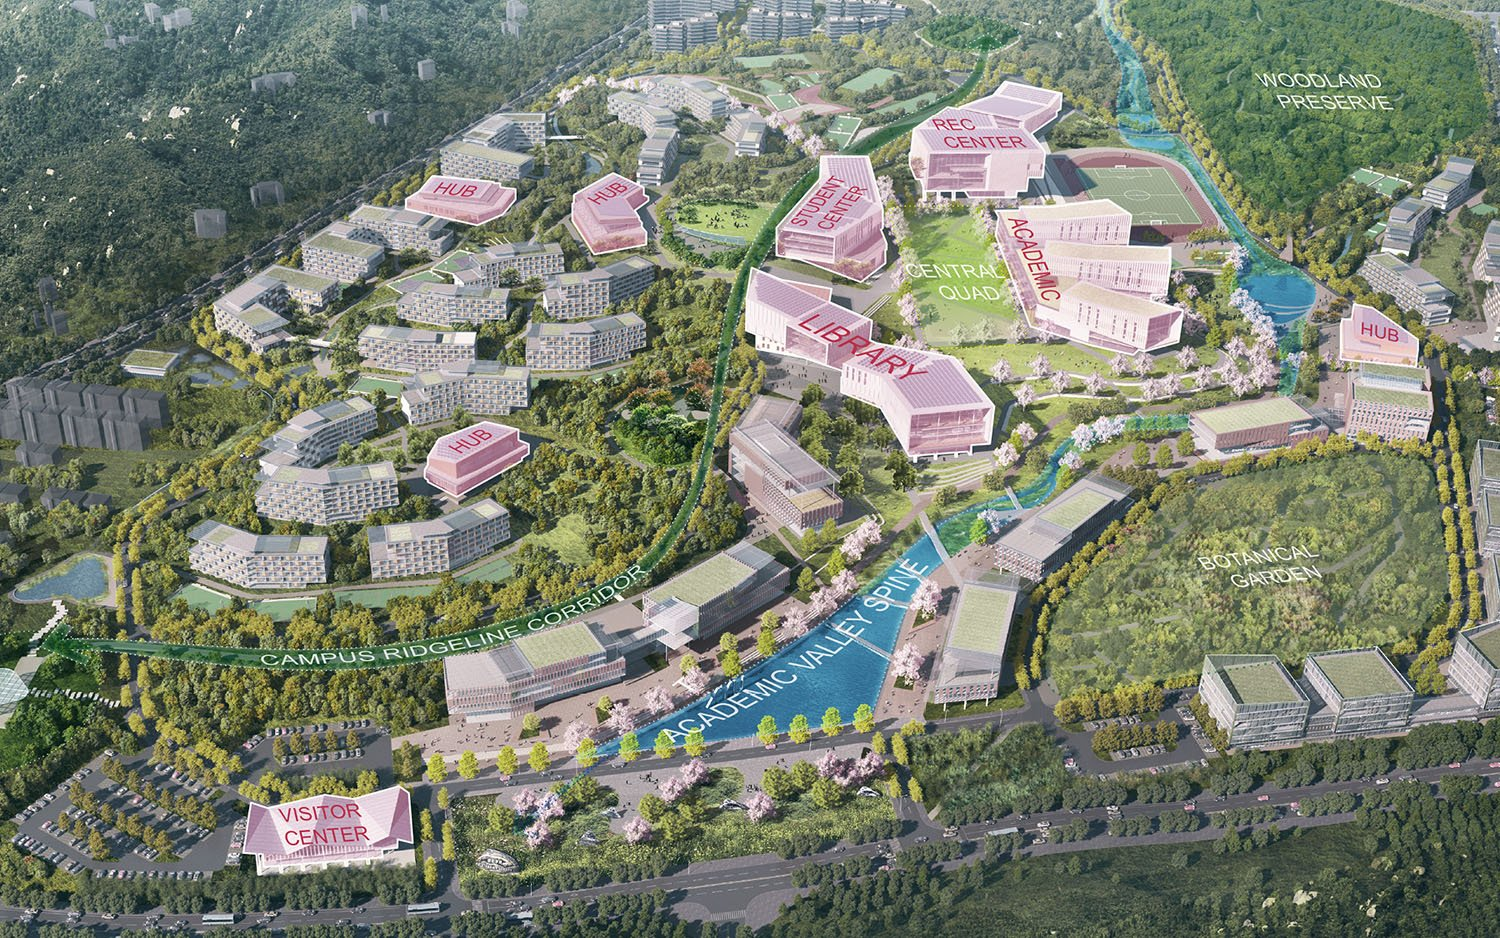 The new campus strives to advance Xinyang University's educational mission as a 21st-century liberal arts institution focusing on collaborative and experiential learning. SASAKI}